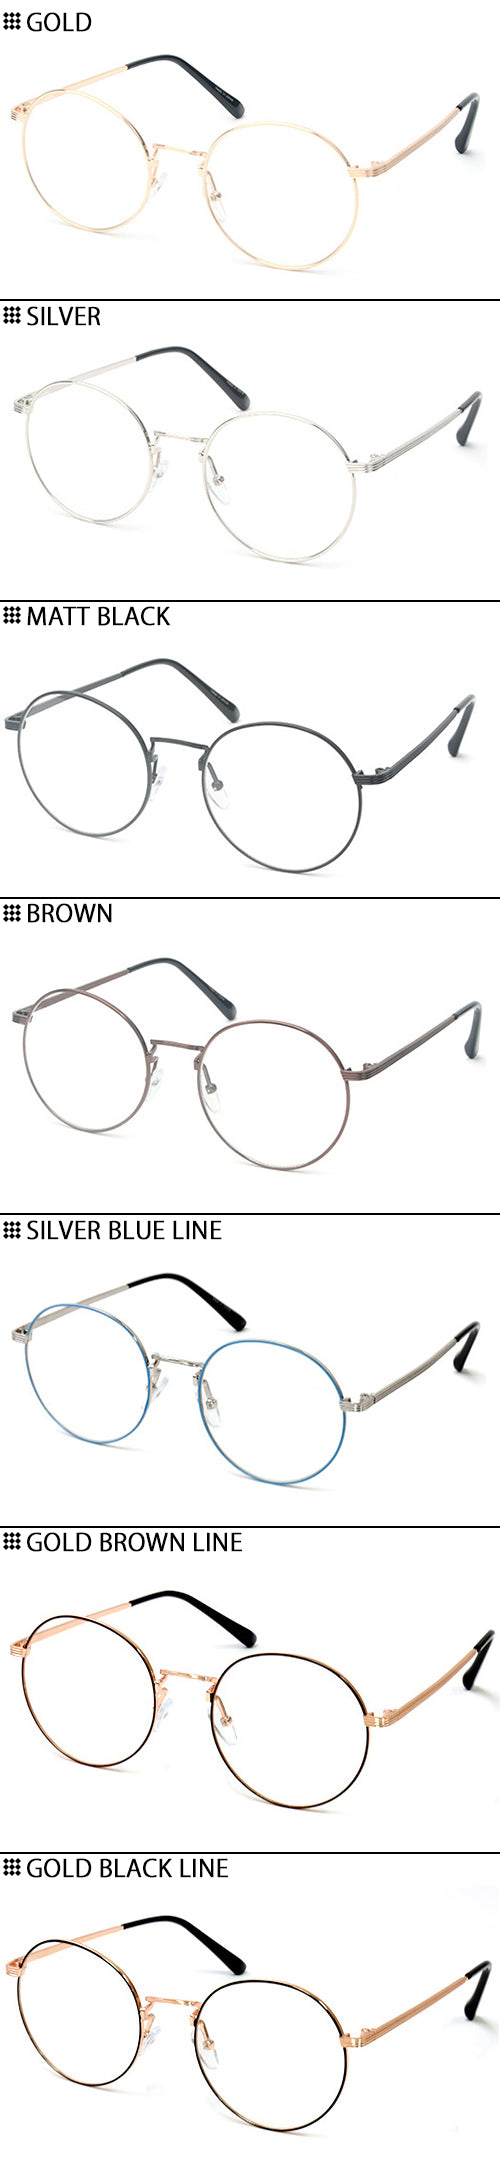 ENCACC Classic Round Retro Eye glasses Clear Lens Glasses Non Prescription Metal Frame 3015